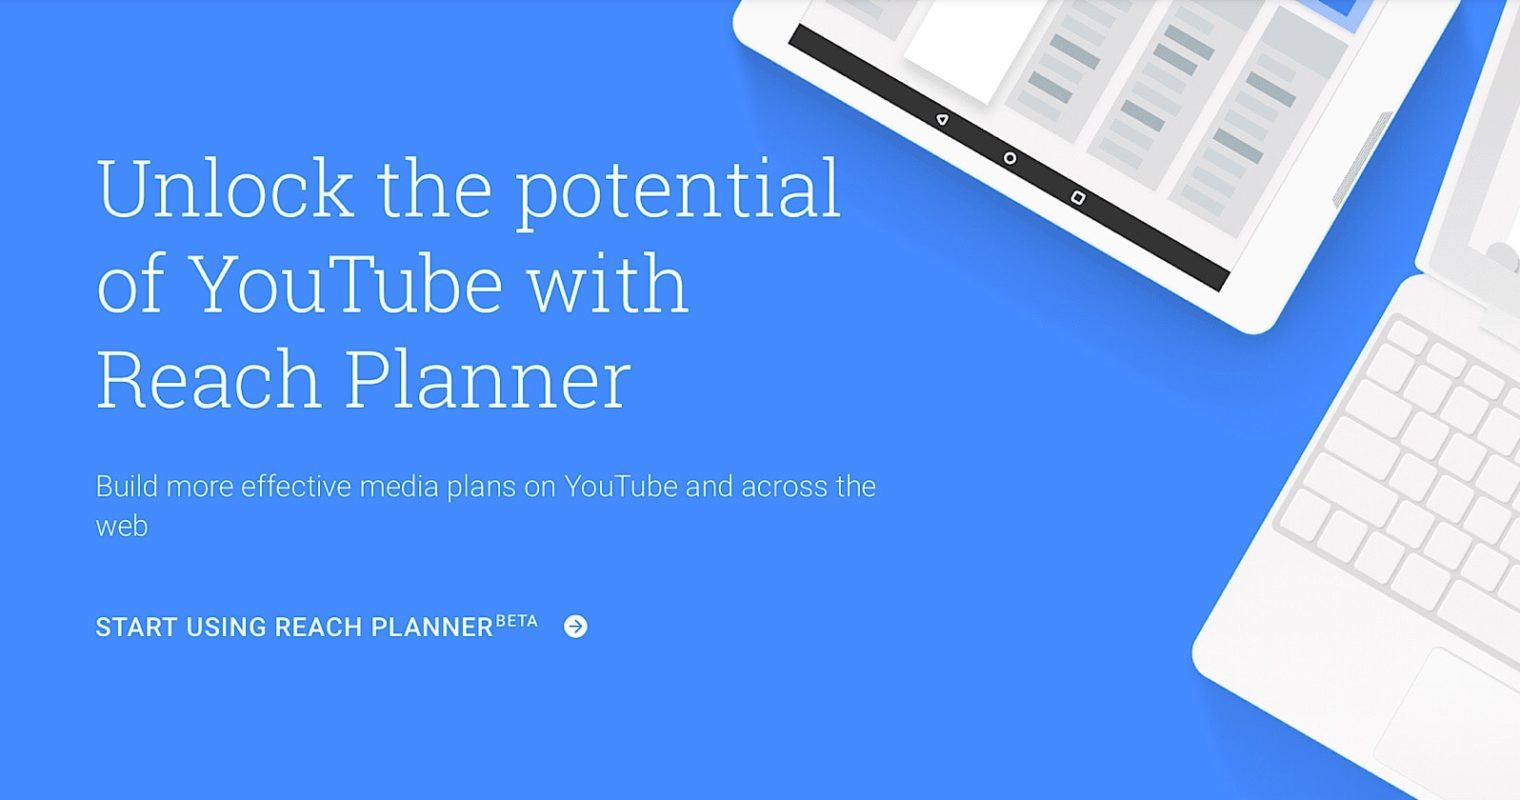 New Google AdWords Tool Can Forecast Reach of YouTube Ads